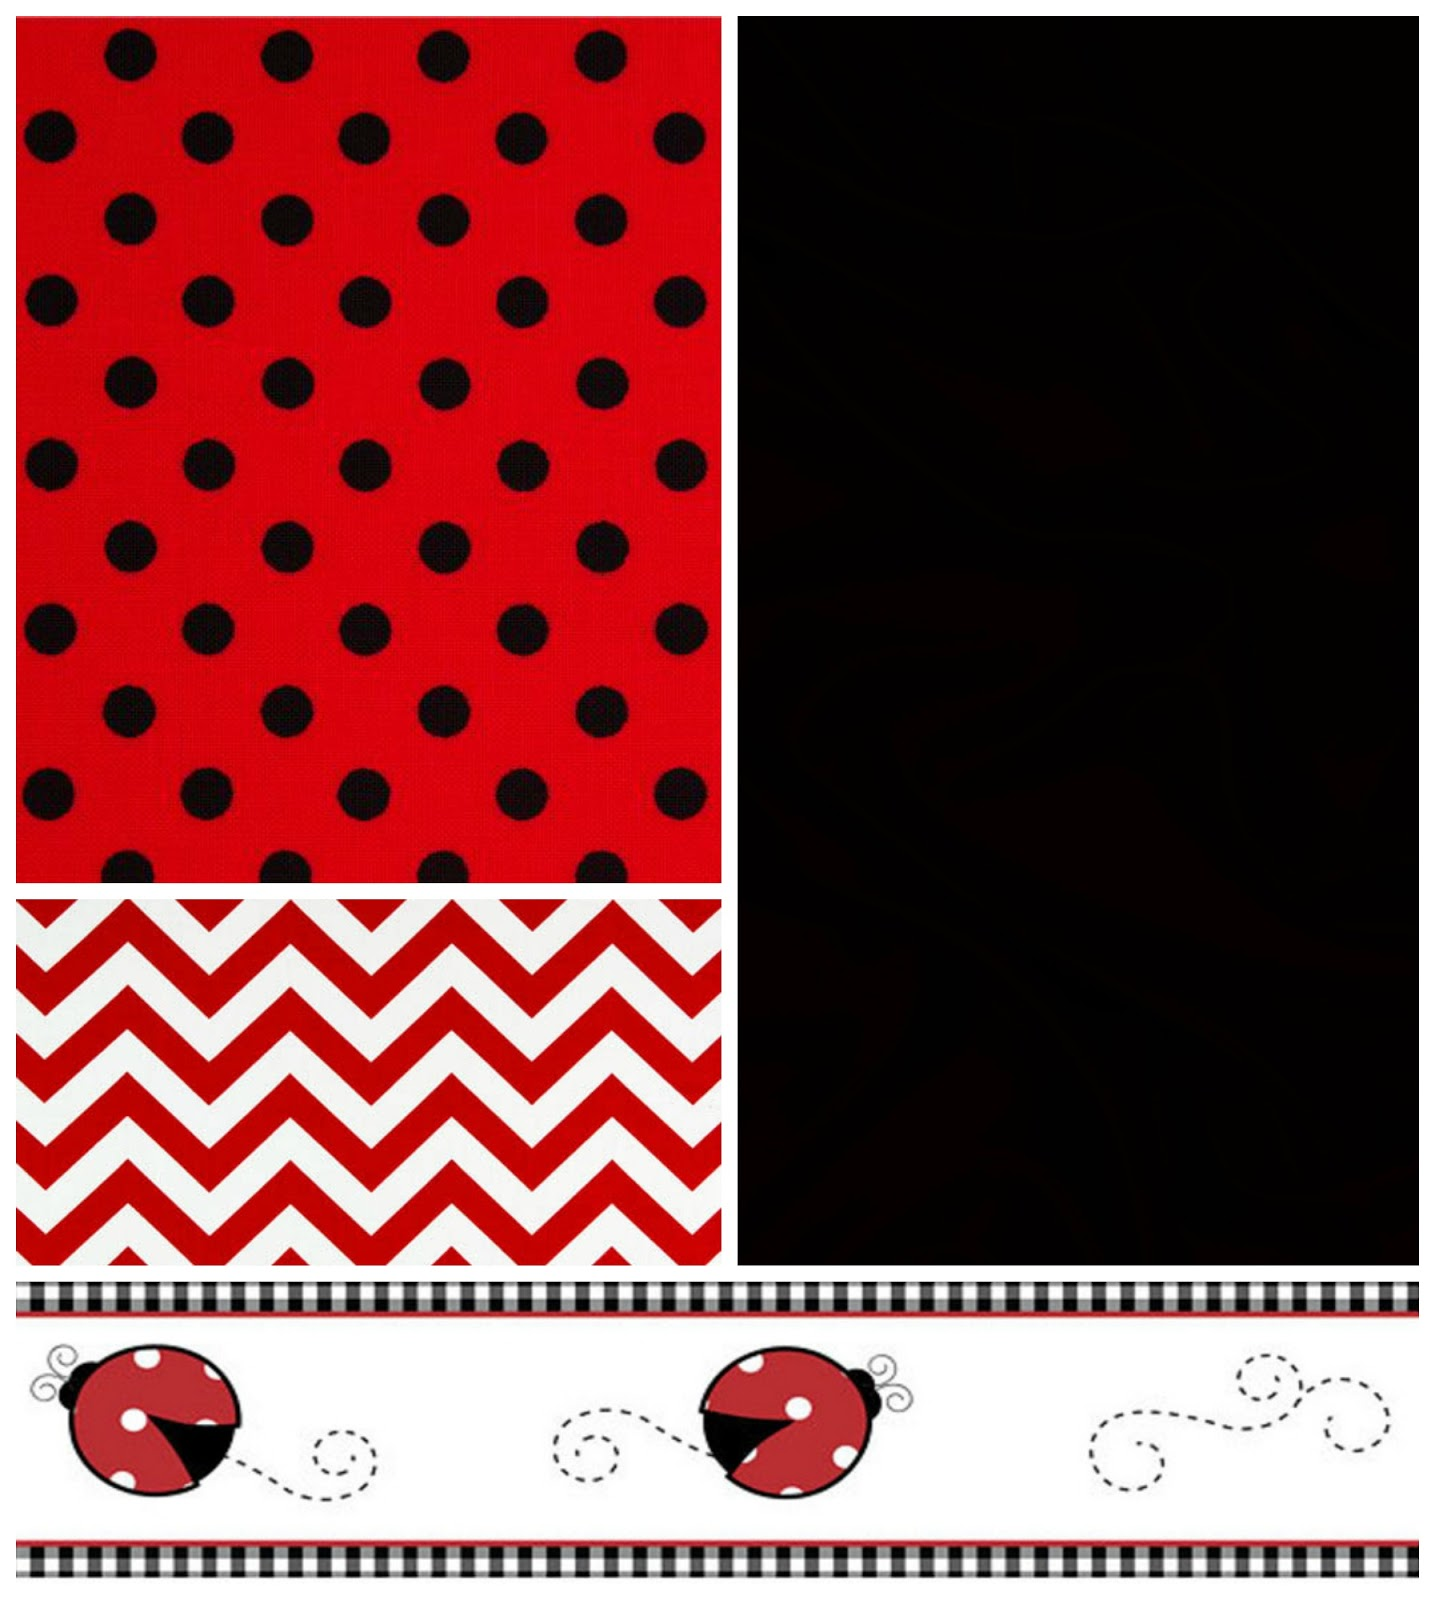 Ladybug birthday invitation template, plus learn how to make your own!